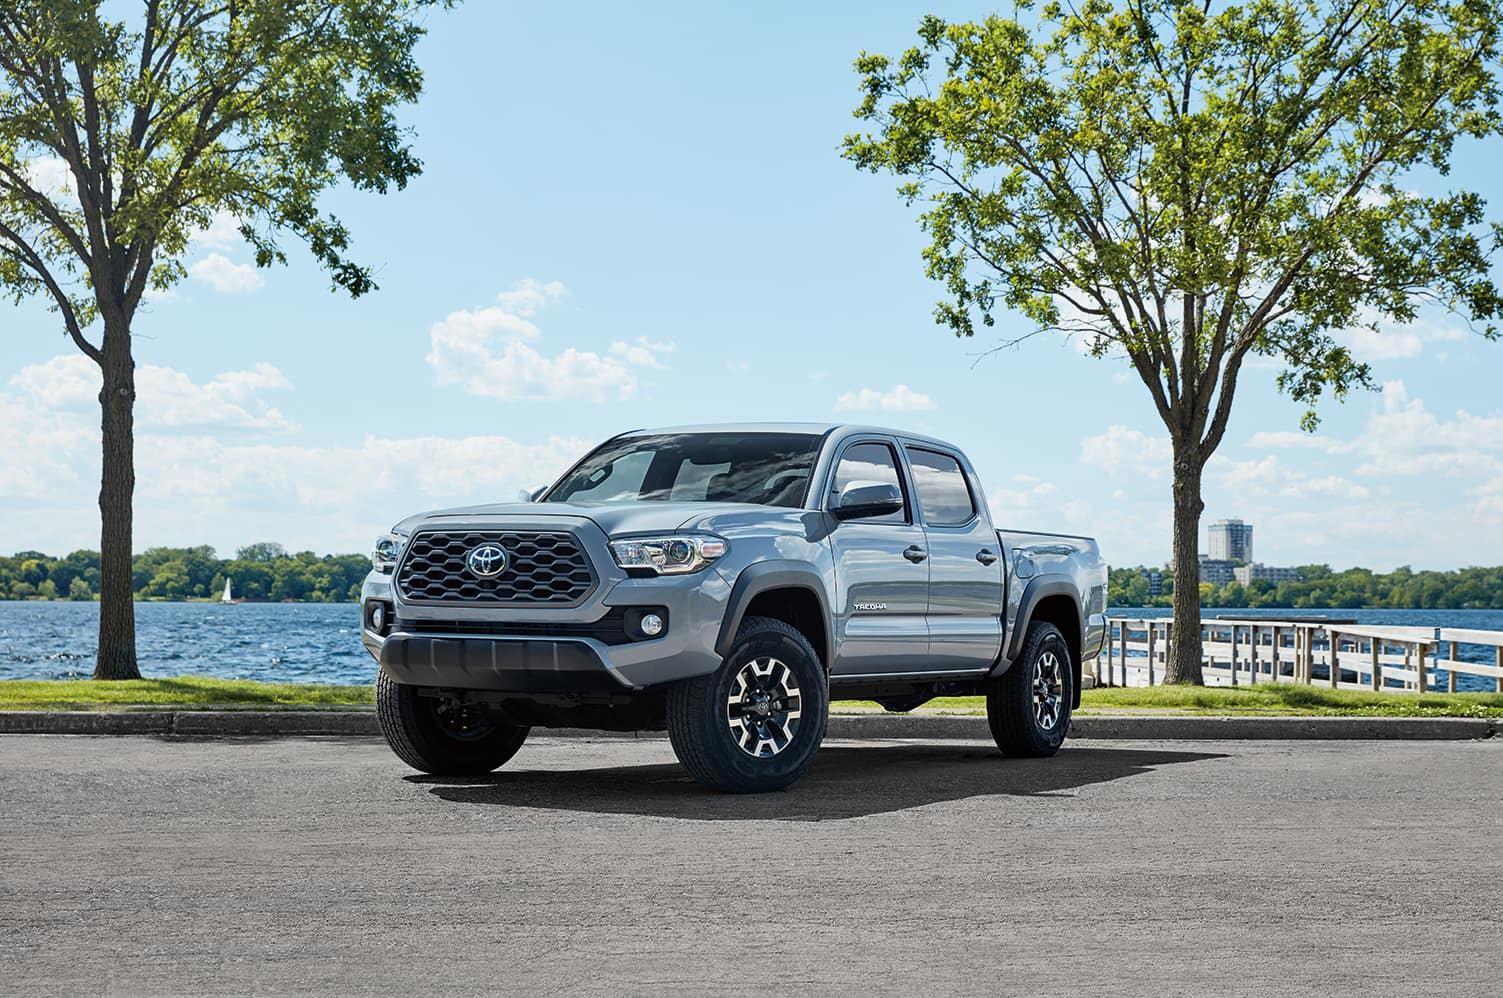 Lancaster Toyota is a Toyota Dealership in Lancaster near Salunga-Landisville PA | 2020 Toyota Tacoma parked next to lake